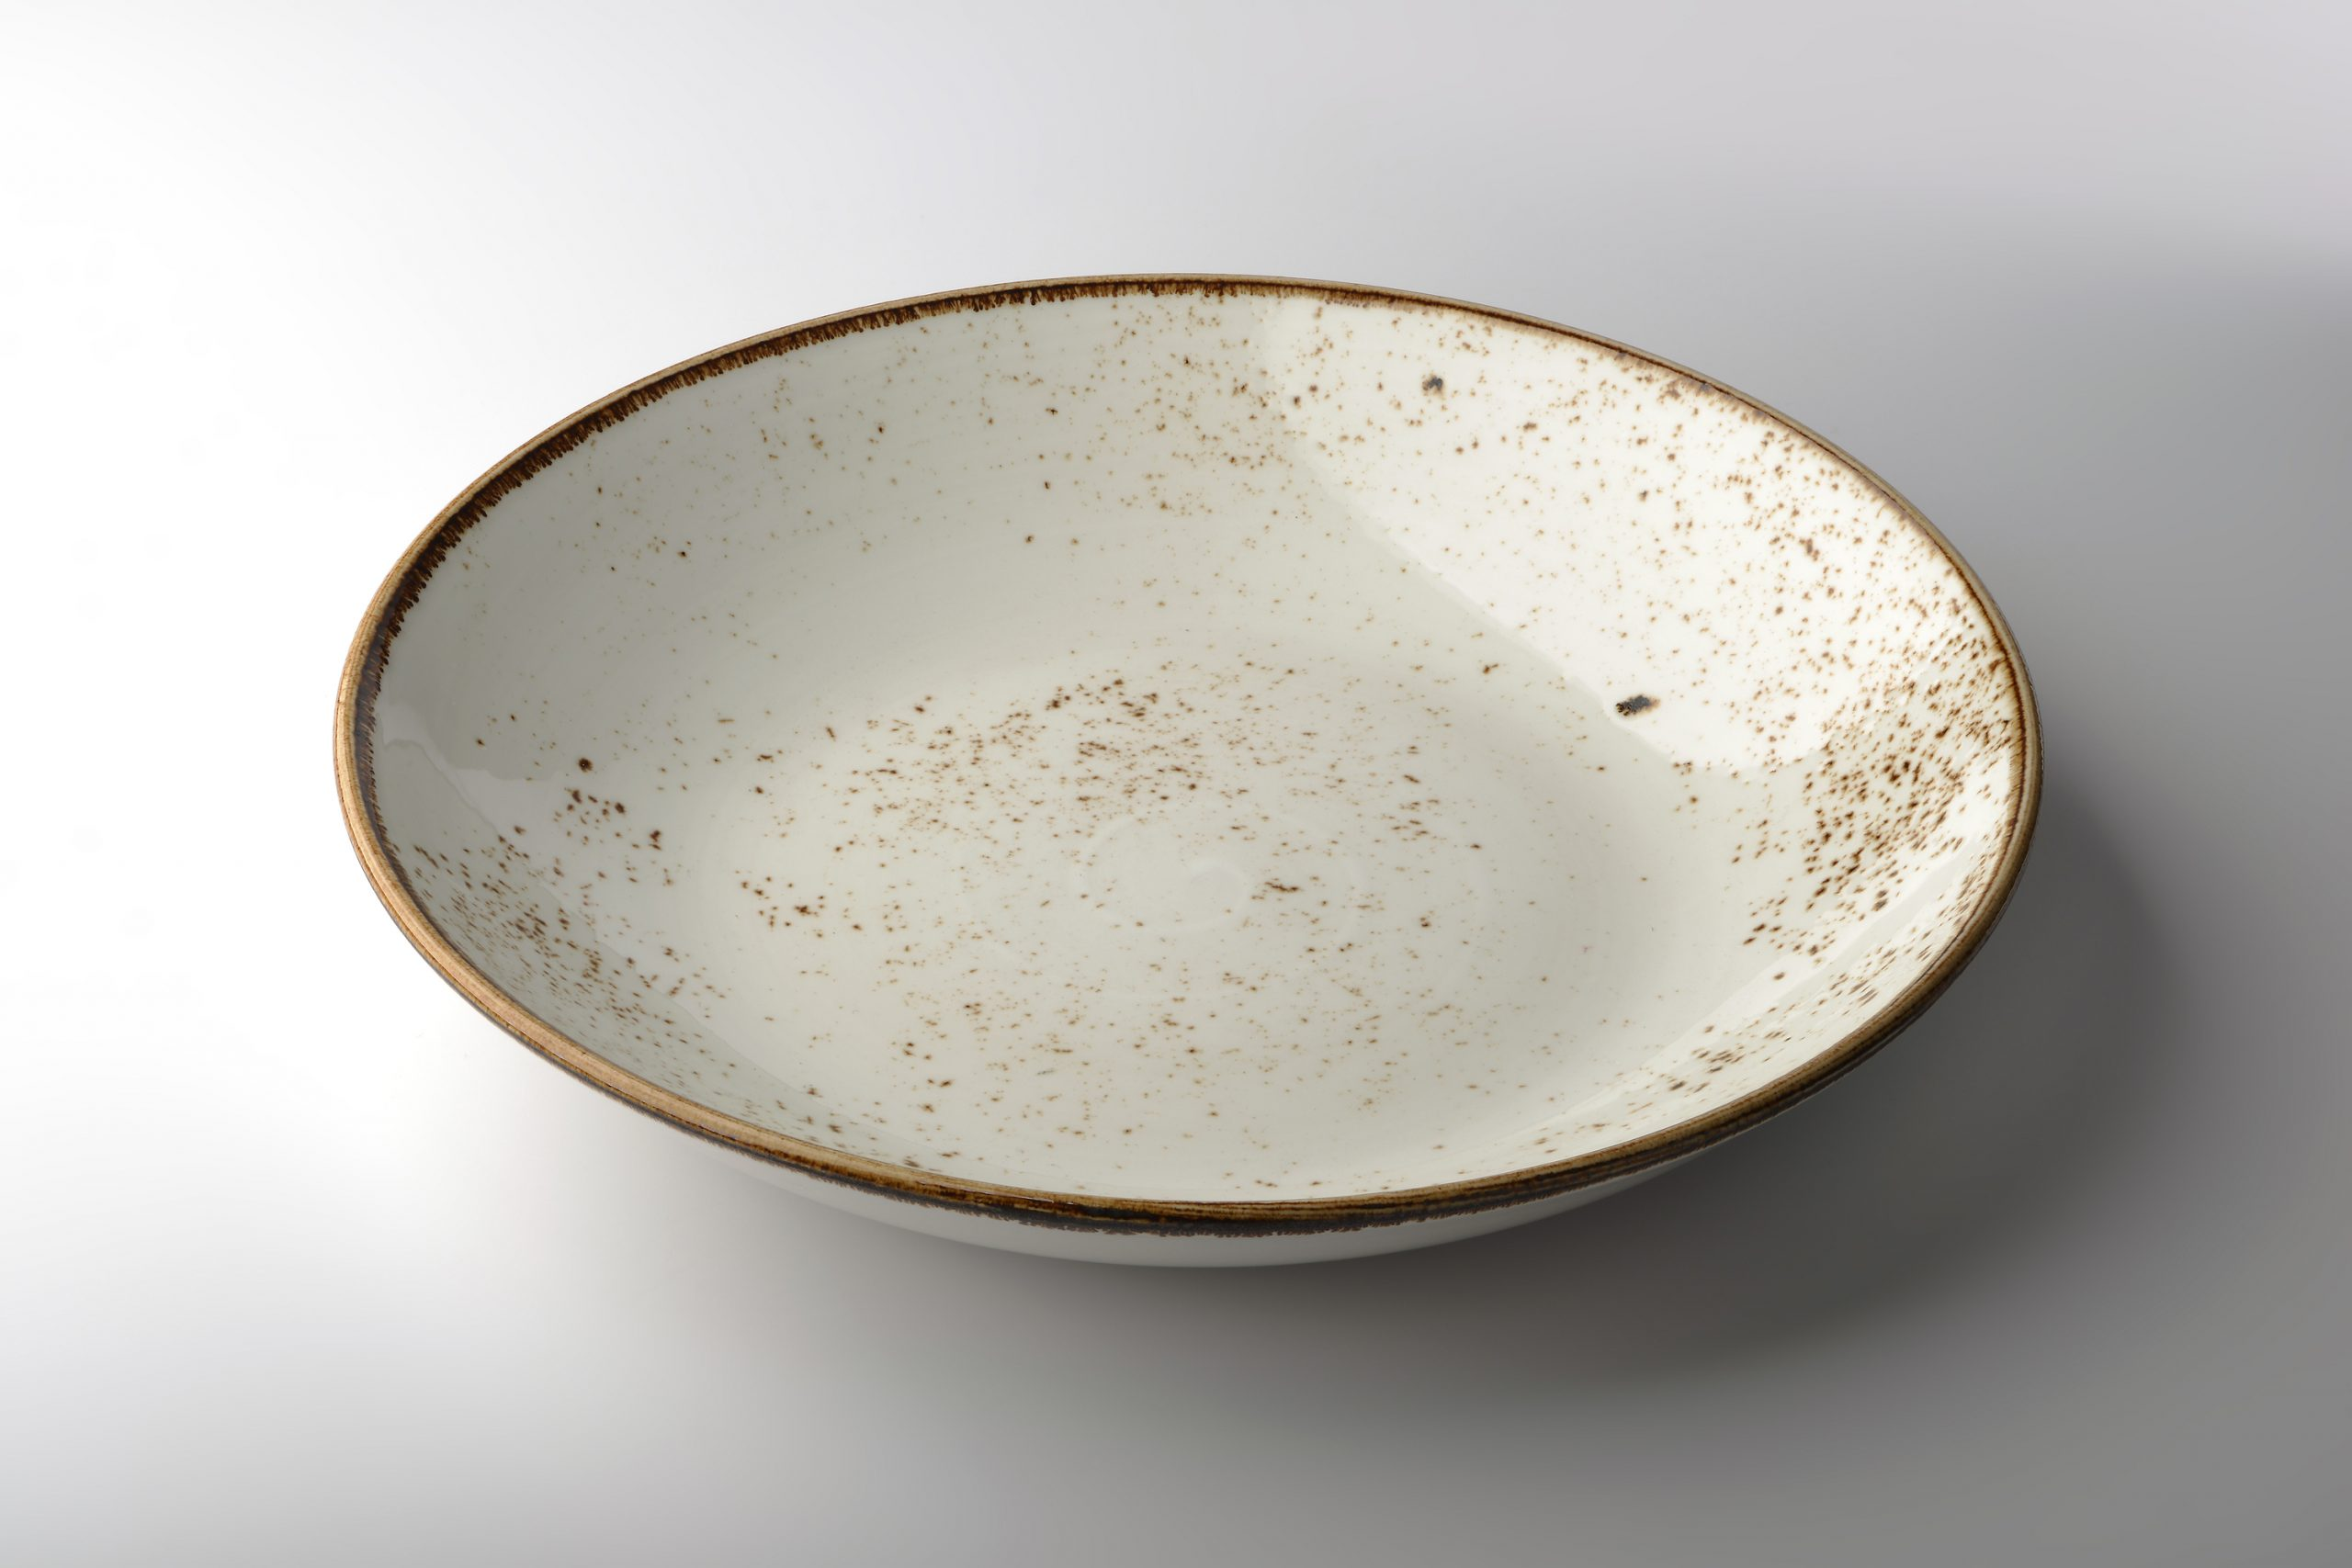 A beautiful dinner plate speckled with brown paint that is lead free. Painting plain white dishes is an easy way to beautify your home because it adds color and character.